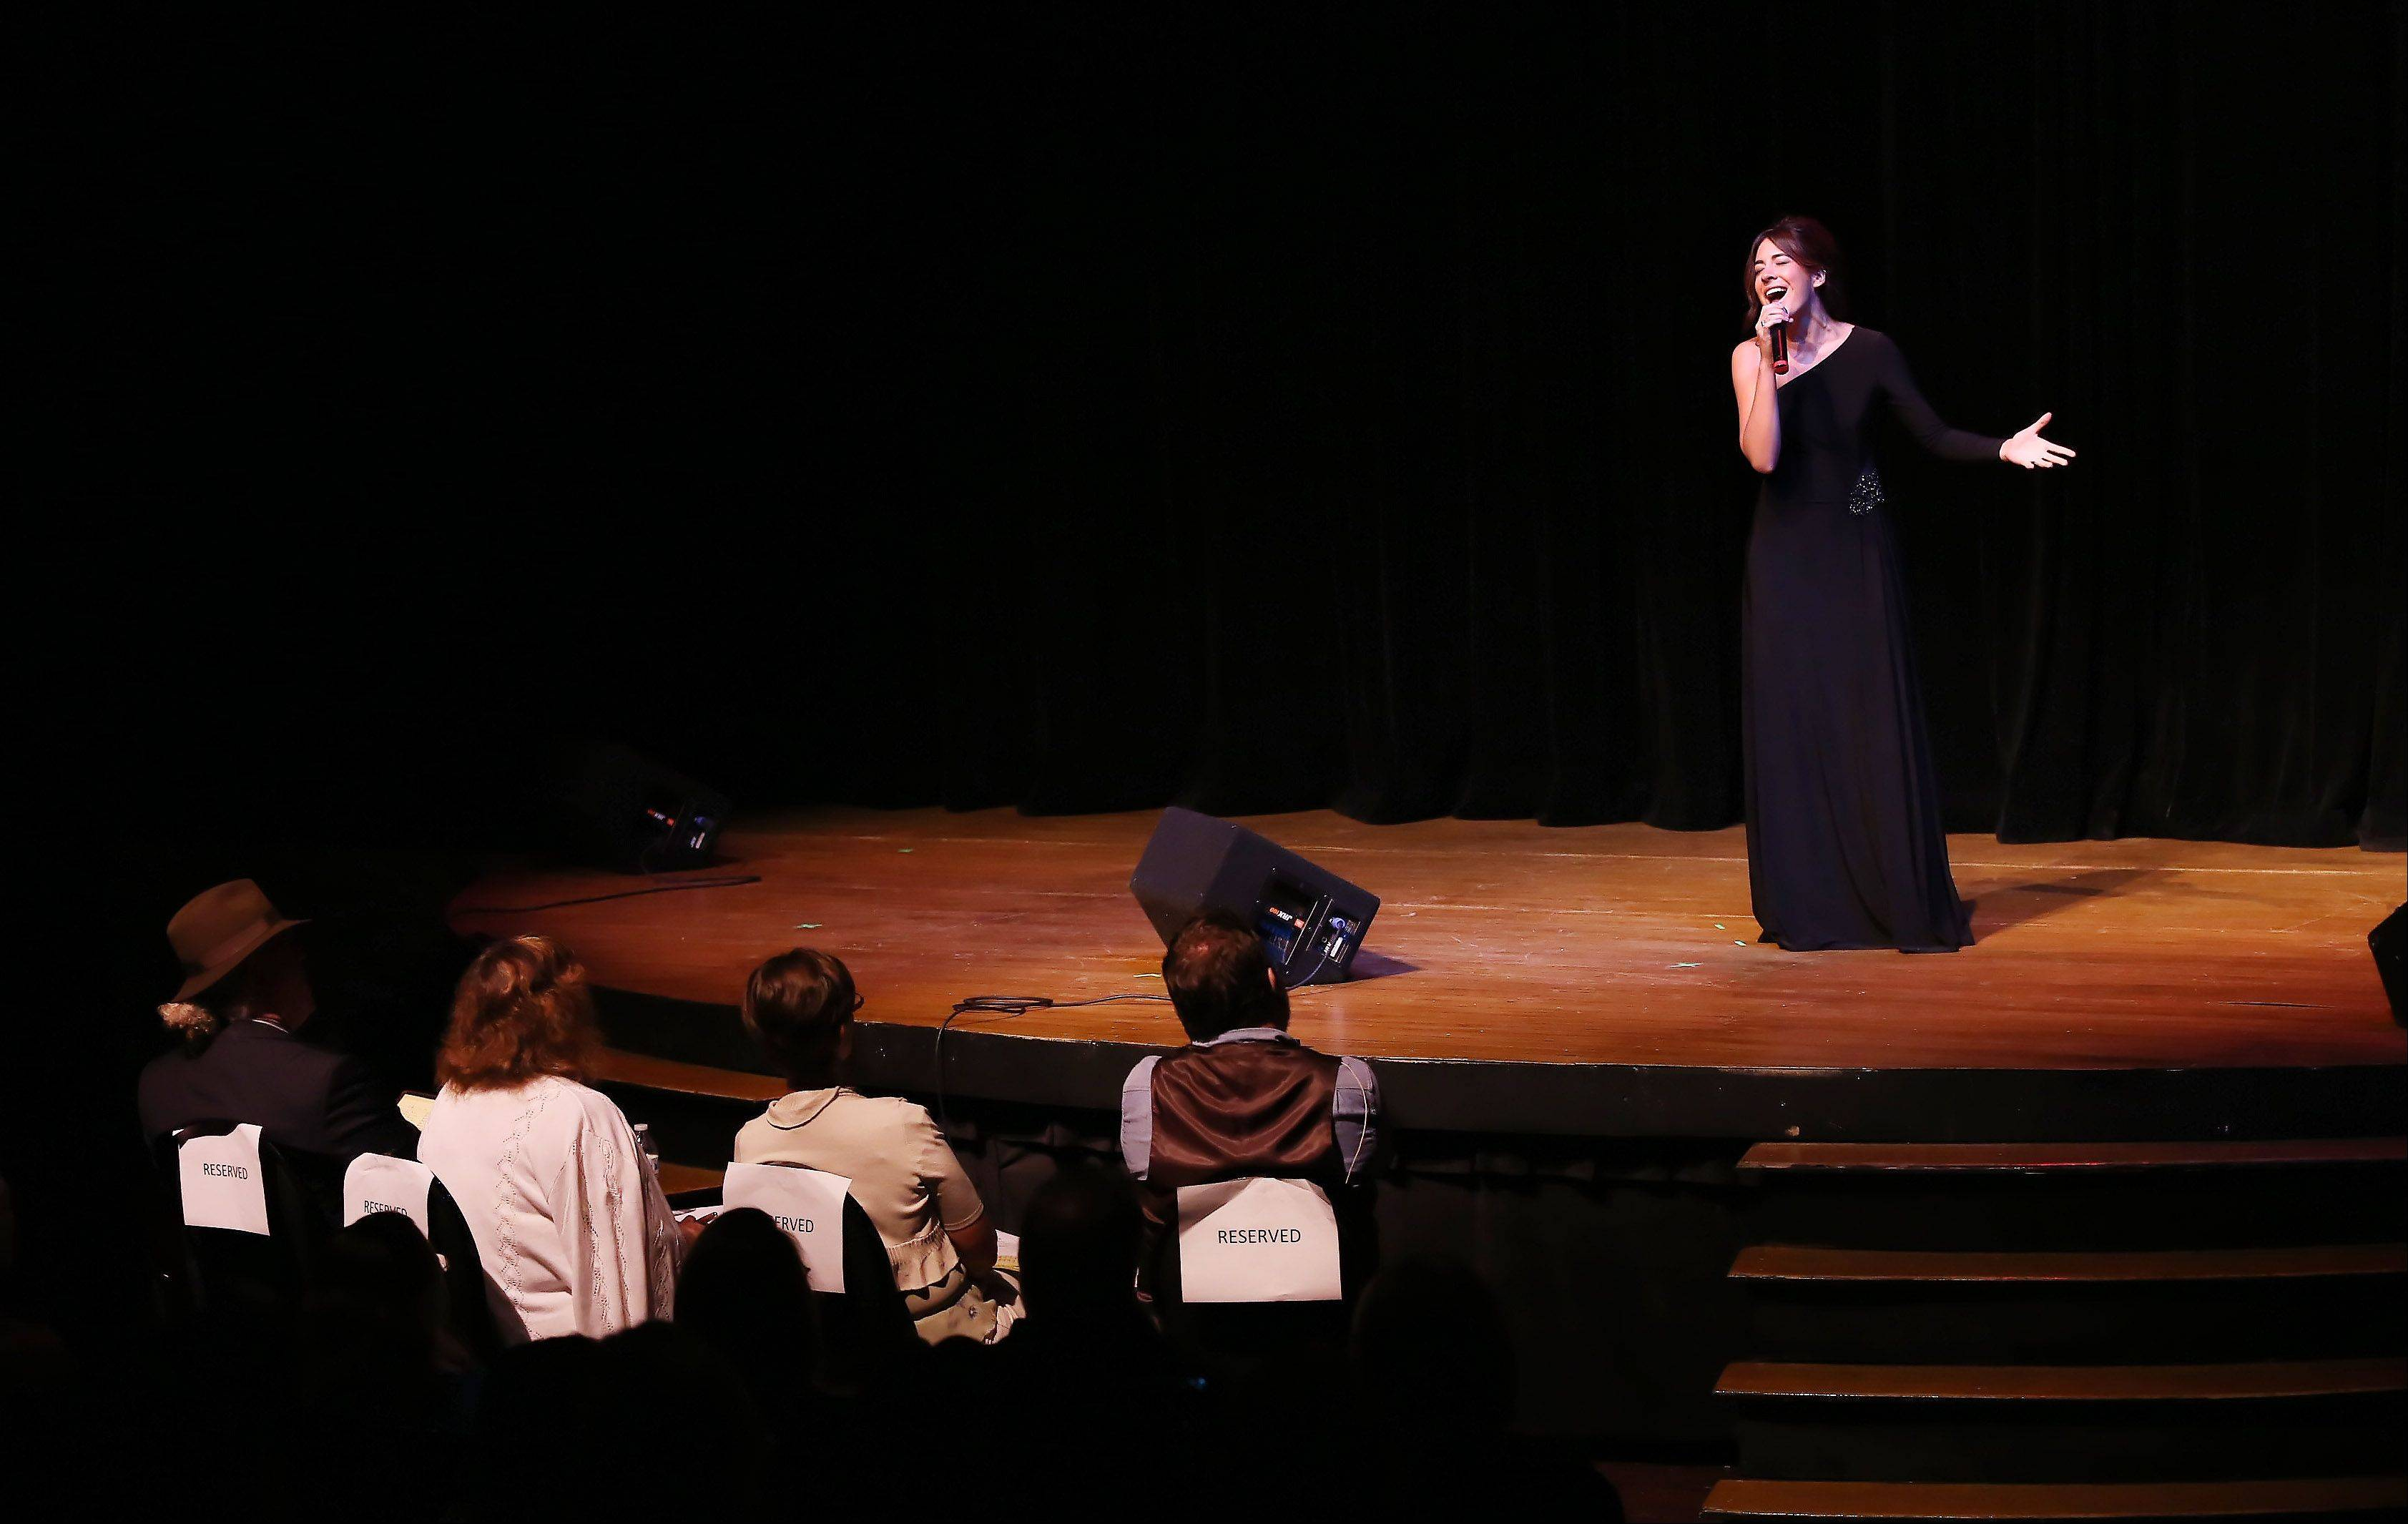 Gabriela Francesca of Palatine performs for the judges during Suburban Chicago's Got Talent competition Sunday night at the Metropolis Performing Arts Centre in Arlington Heights. The summer long talent contest is presented by the Daily Herald and sponsored by the Arlington Heights Chamber of Commerce.